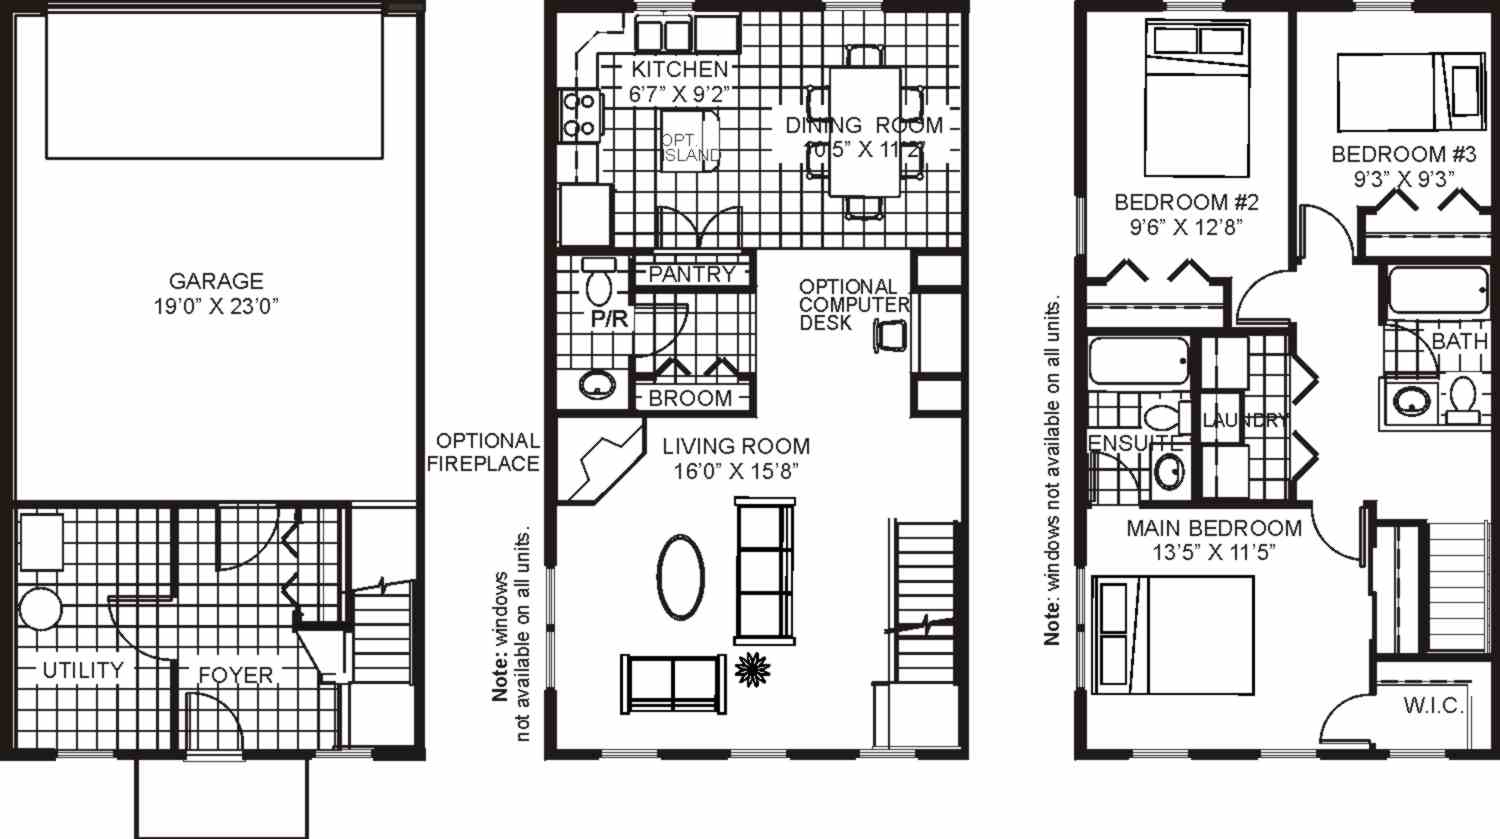 3 bedroom floor plans with dimensions